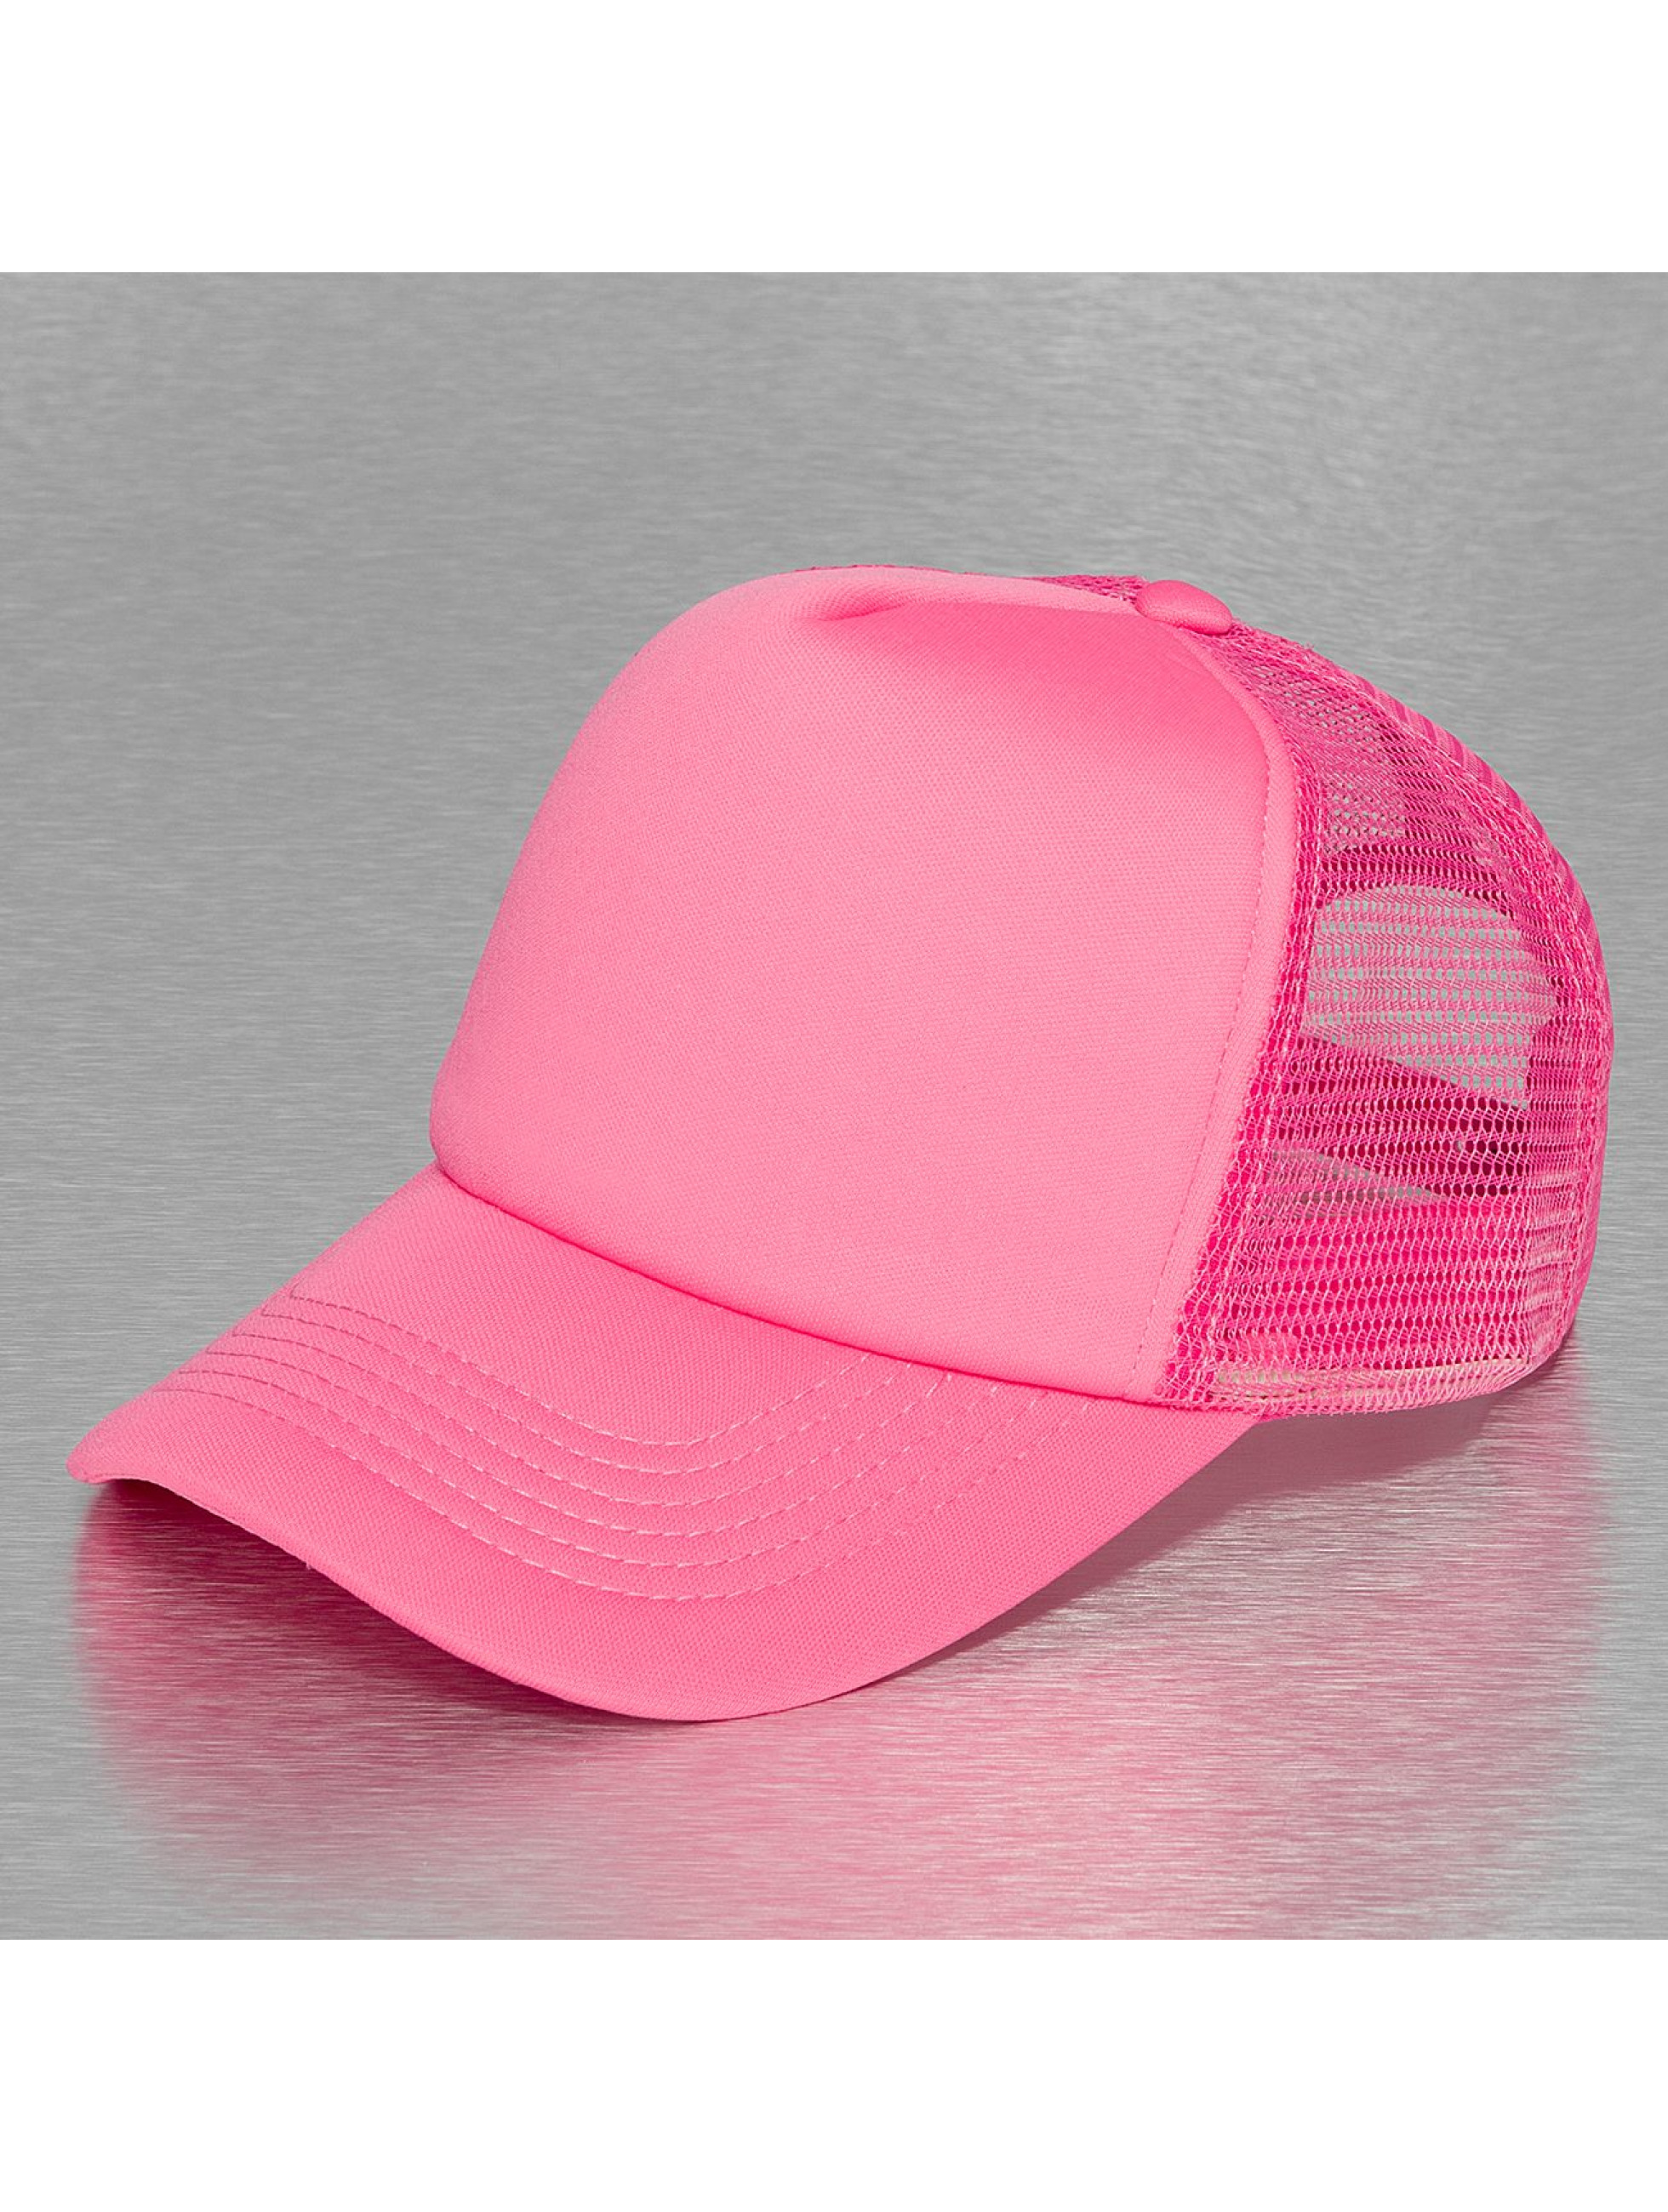 Trucker Cap Blank in pink